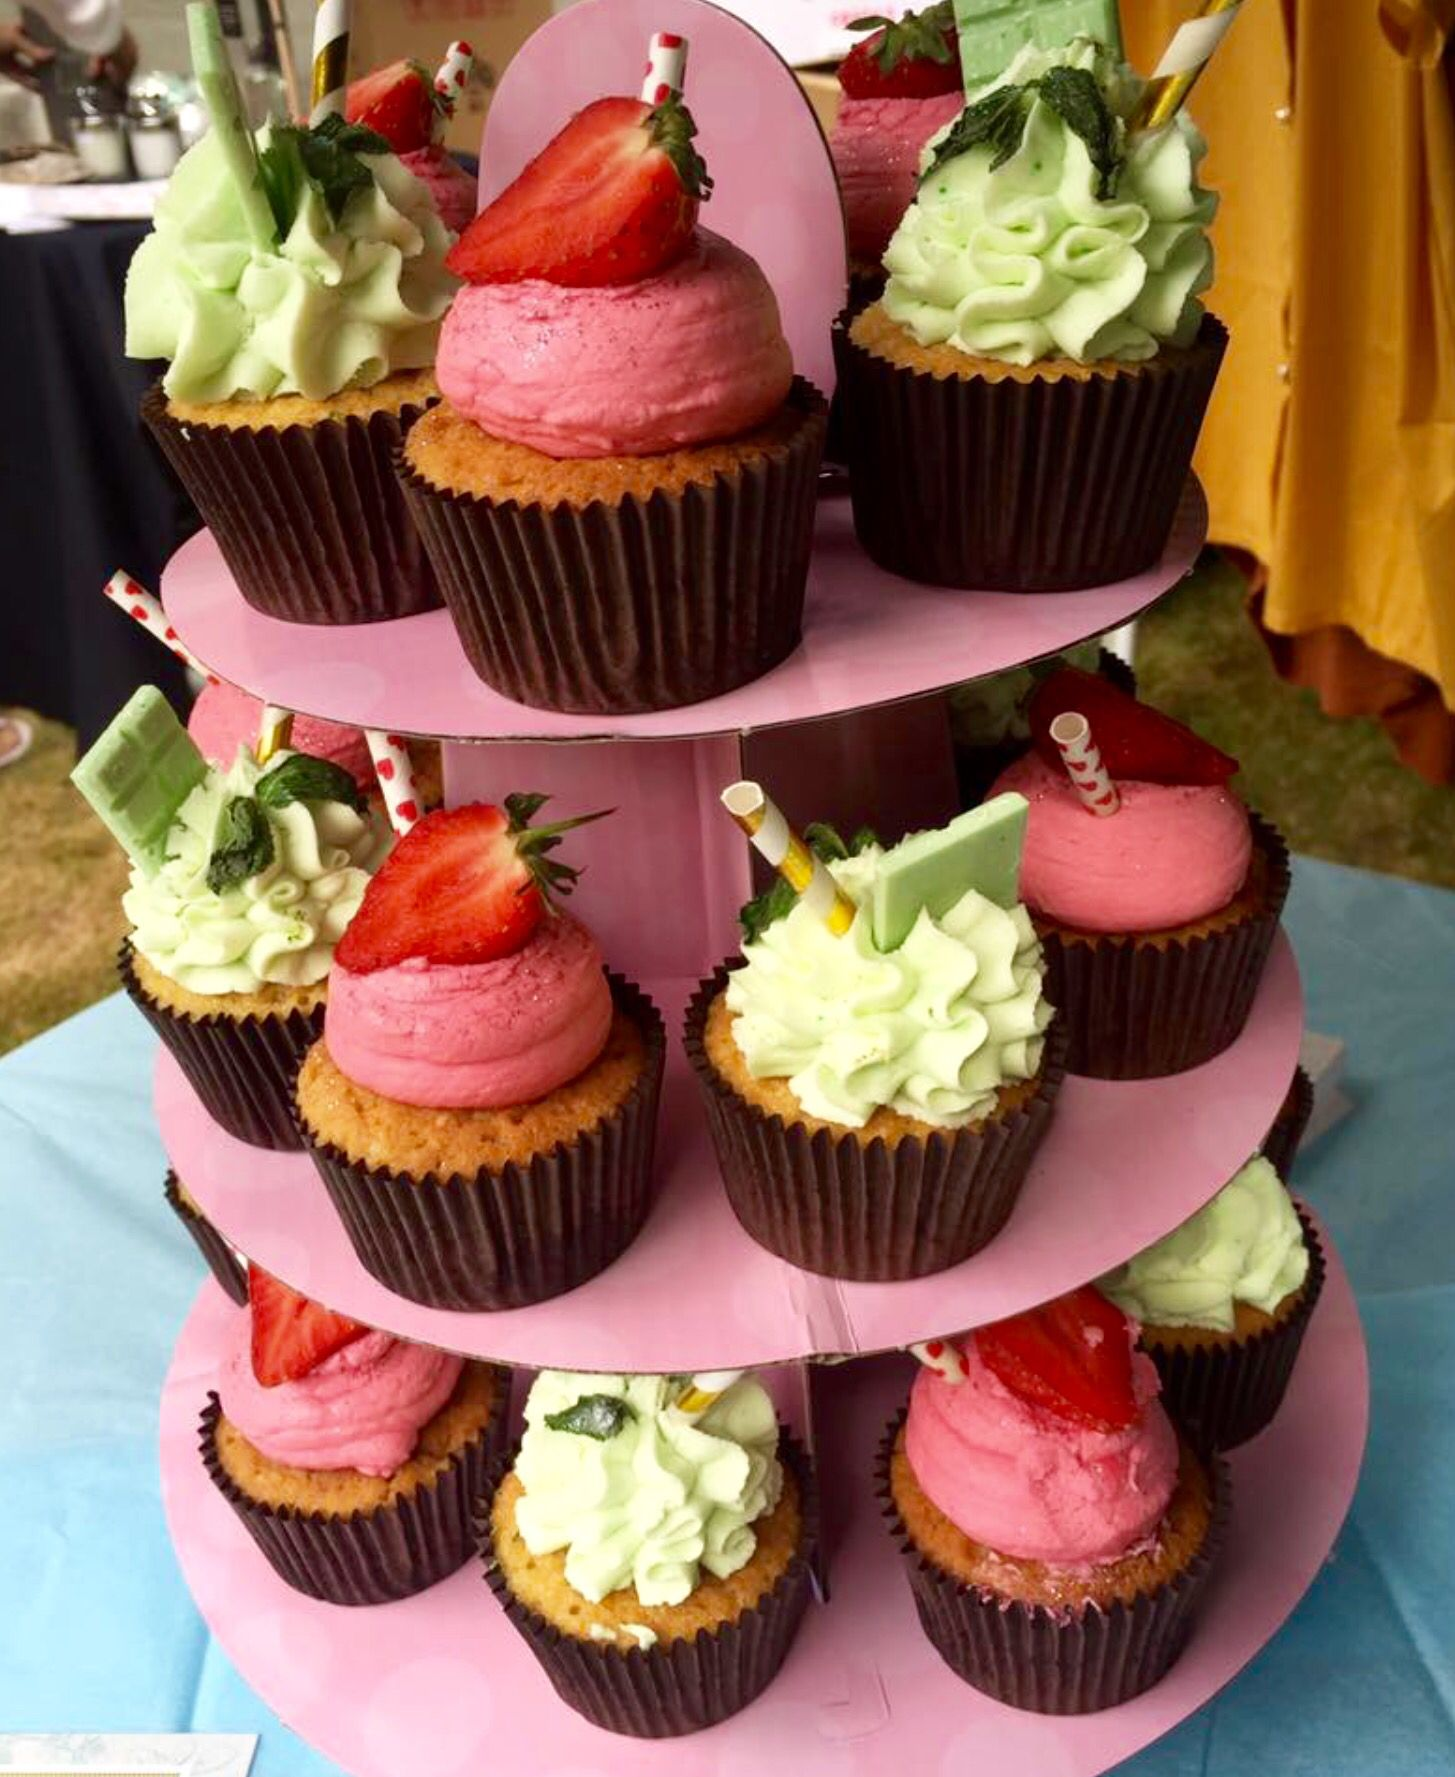 Mojito & Strawberry Daiquiri Cup Cakes With Barcardi Lime Curd & Rum Strawberry Purée  Created by Fay's Cakery Brentwood Essex UK @fayscakery